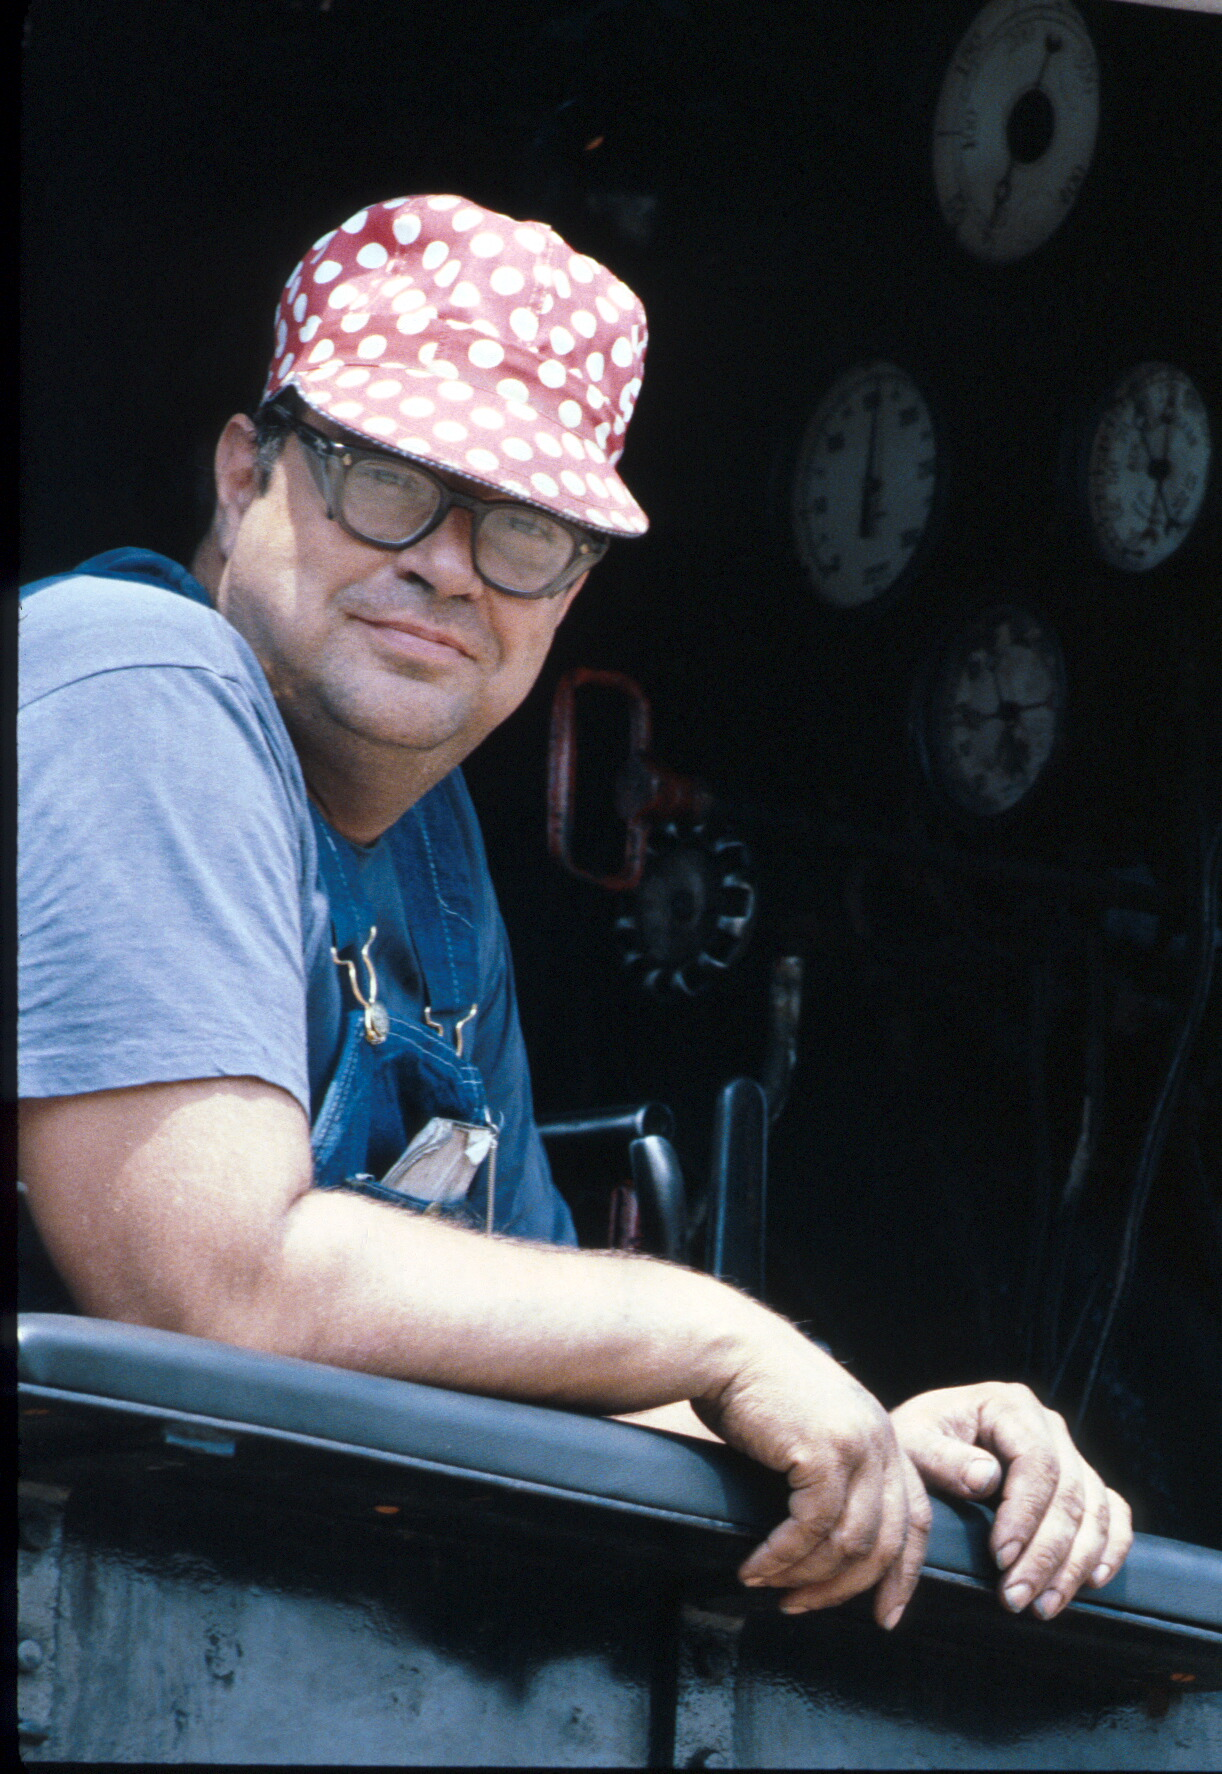 """Ed Beard was one of the IRM's machinists and steam locomotive engineers for a number of years. Here he is sitting """"right seat"""" in SLSF1630.Ektachrome (HS) 35mm film.  Lens probably 100mm or 135mm."""